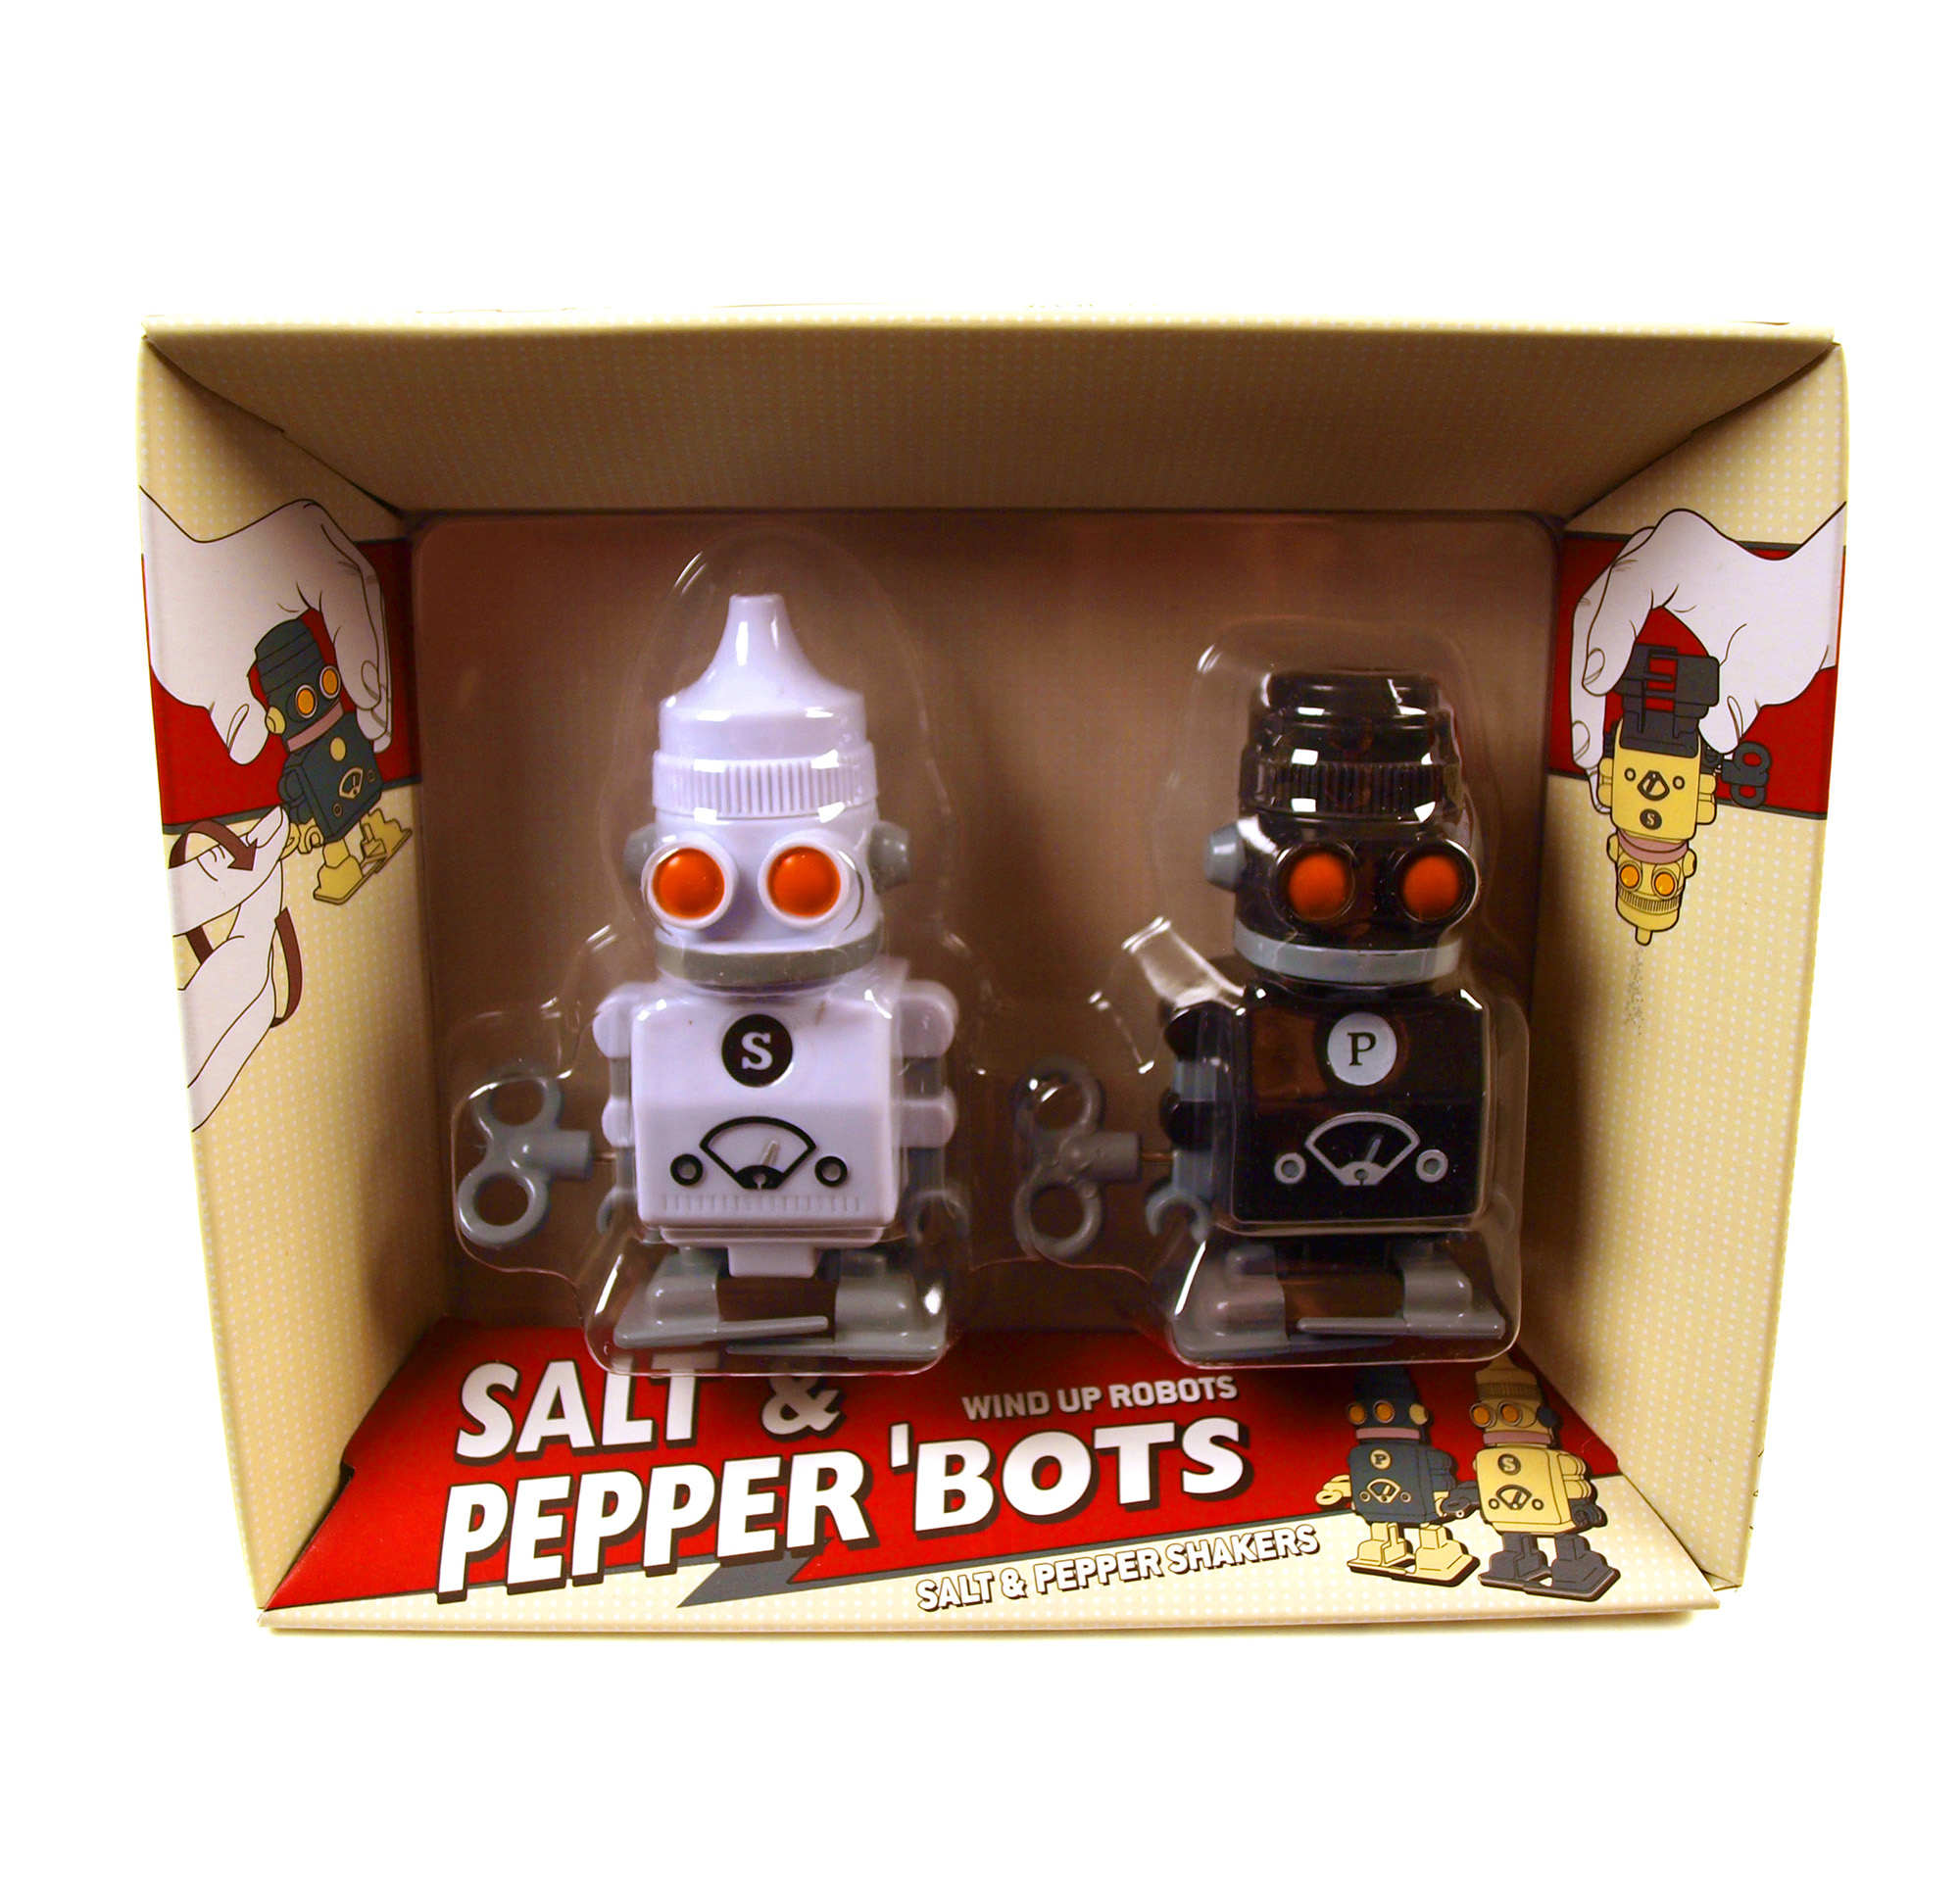 Salt pepper robots pink cat shop Salt and pepper robots